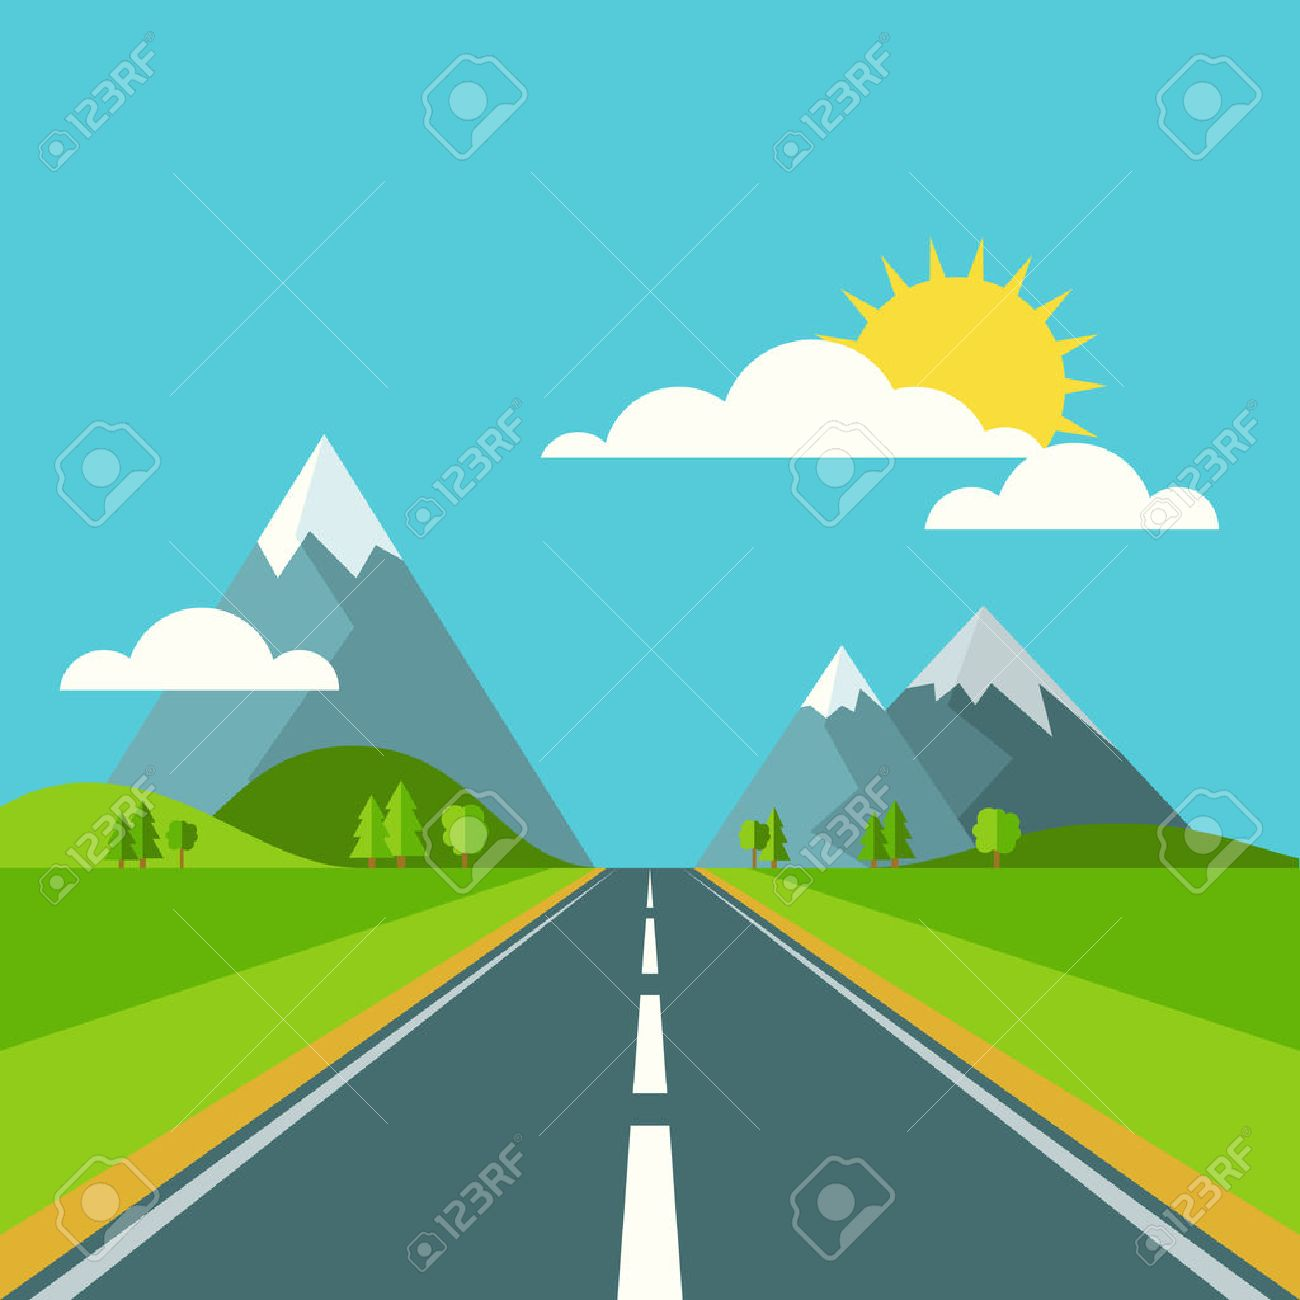 83,438 Highway Stock Vector Illustration And Royalty Free Highway.